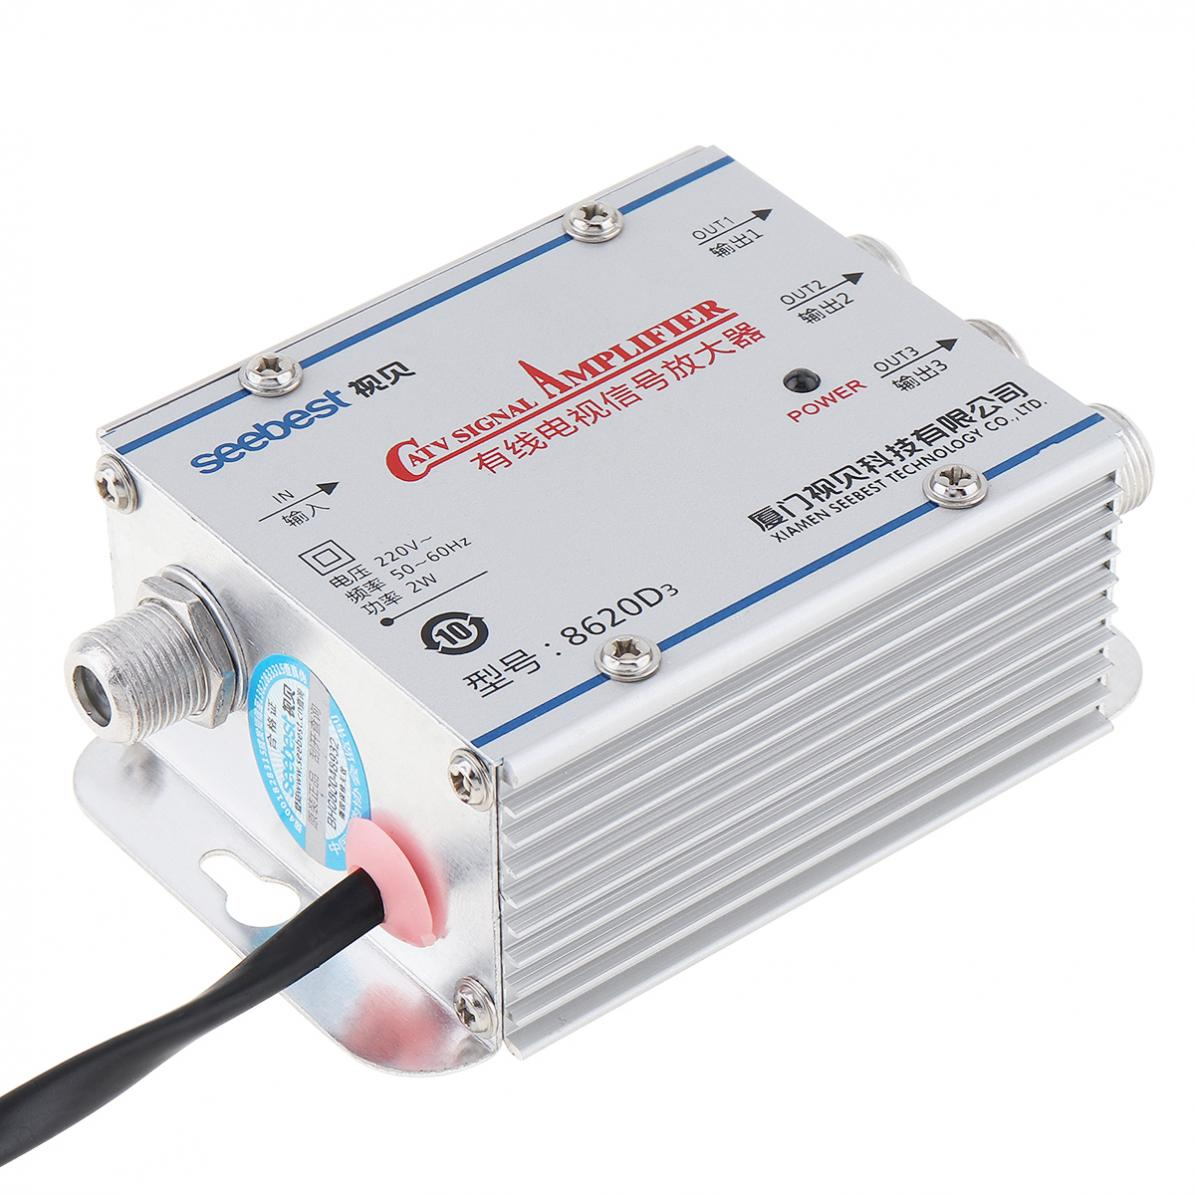 Signal-Amplifier-45-860MHz-1-In-3-Out-CATV-VCR-20DB-TV-Antenna-Booster-Splitter thumbnail 6